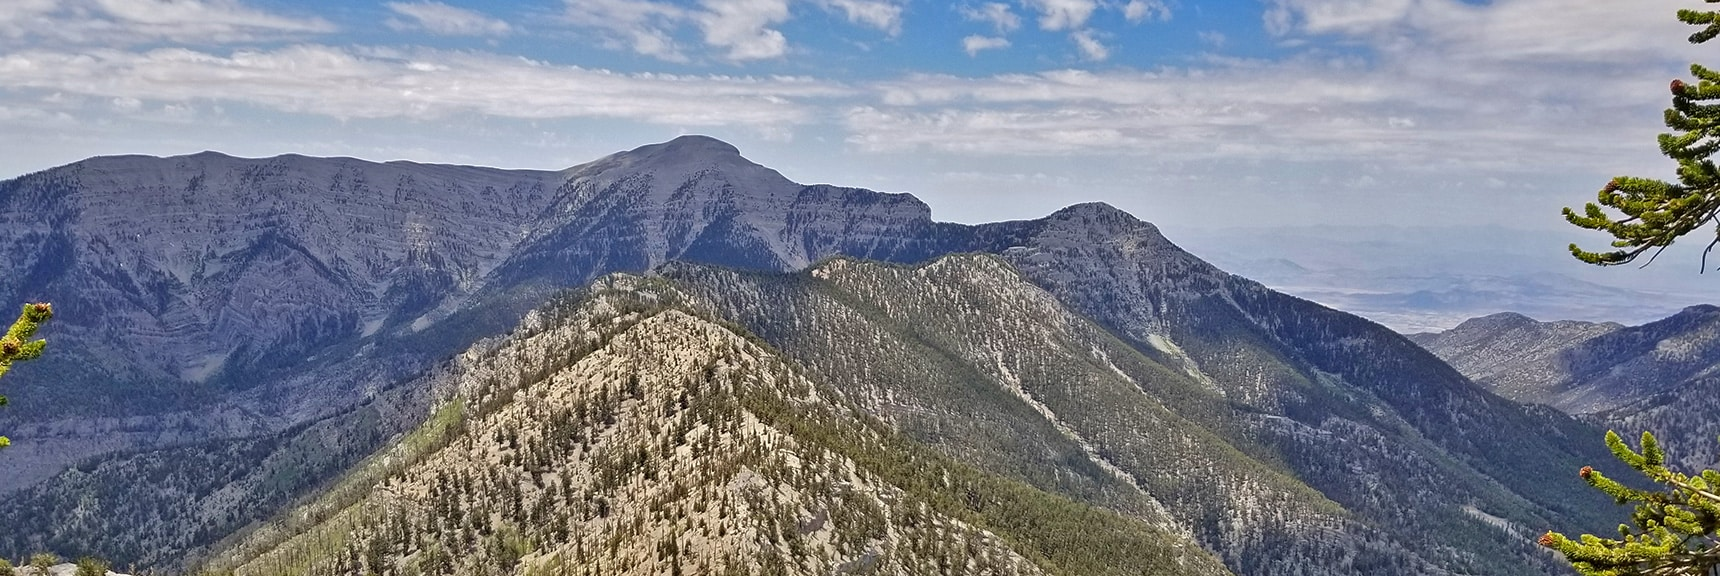 North and South Ridge of Kyle Canyon with Lee Peak and Charleston Peak in the Distance | Mummy Mountain NW Cliffs | Mt Charleston Wilderness | Spring Mountains, Nevada